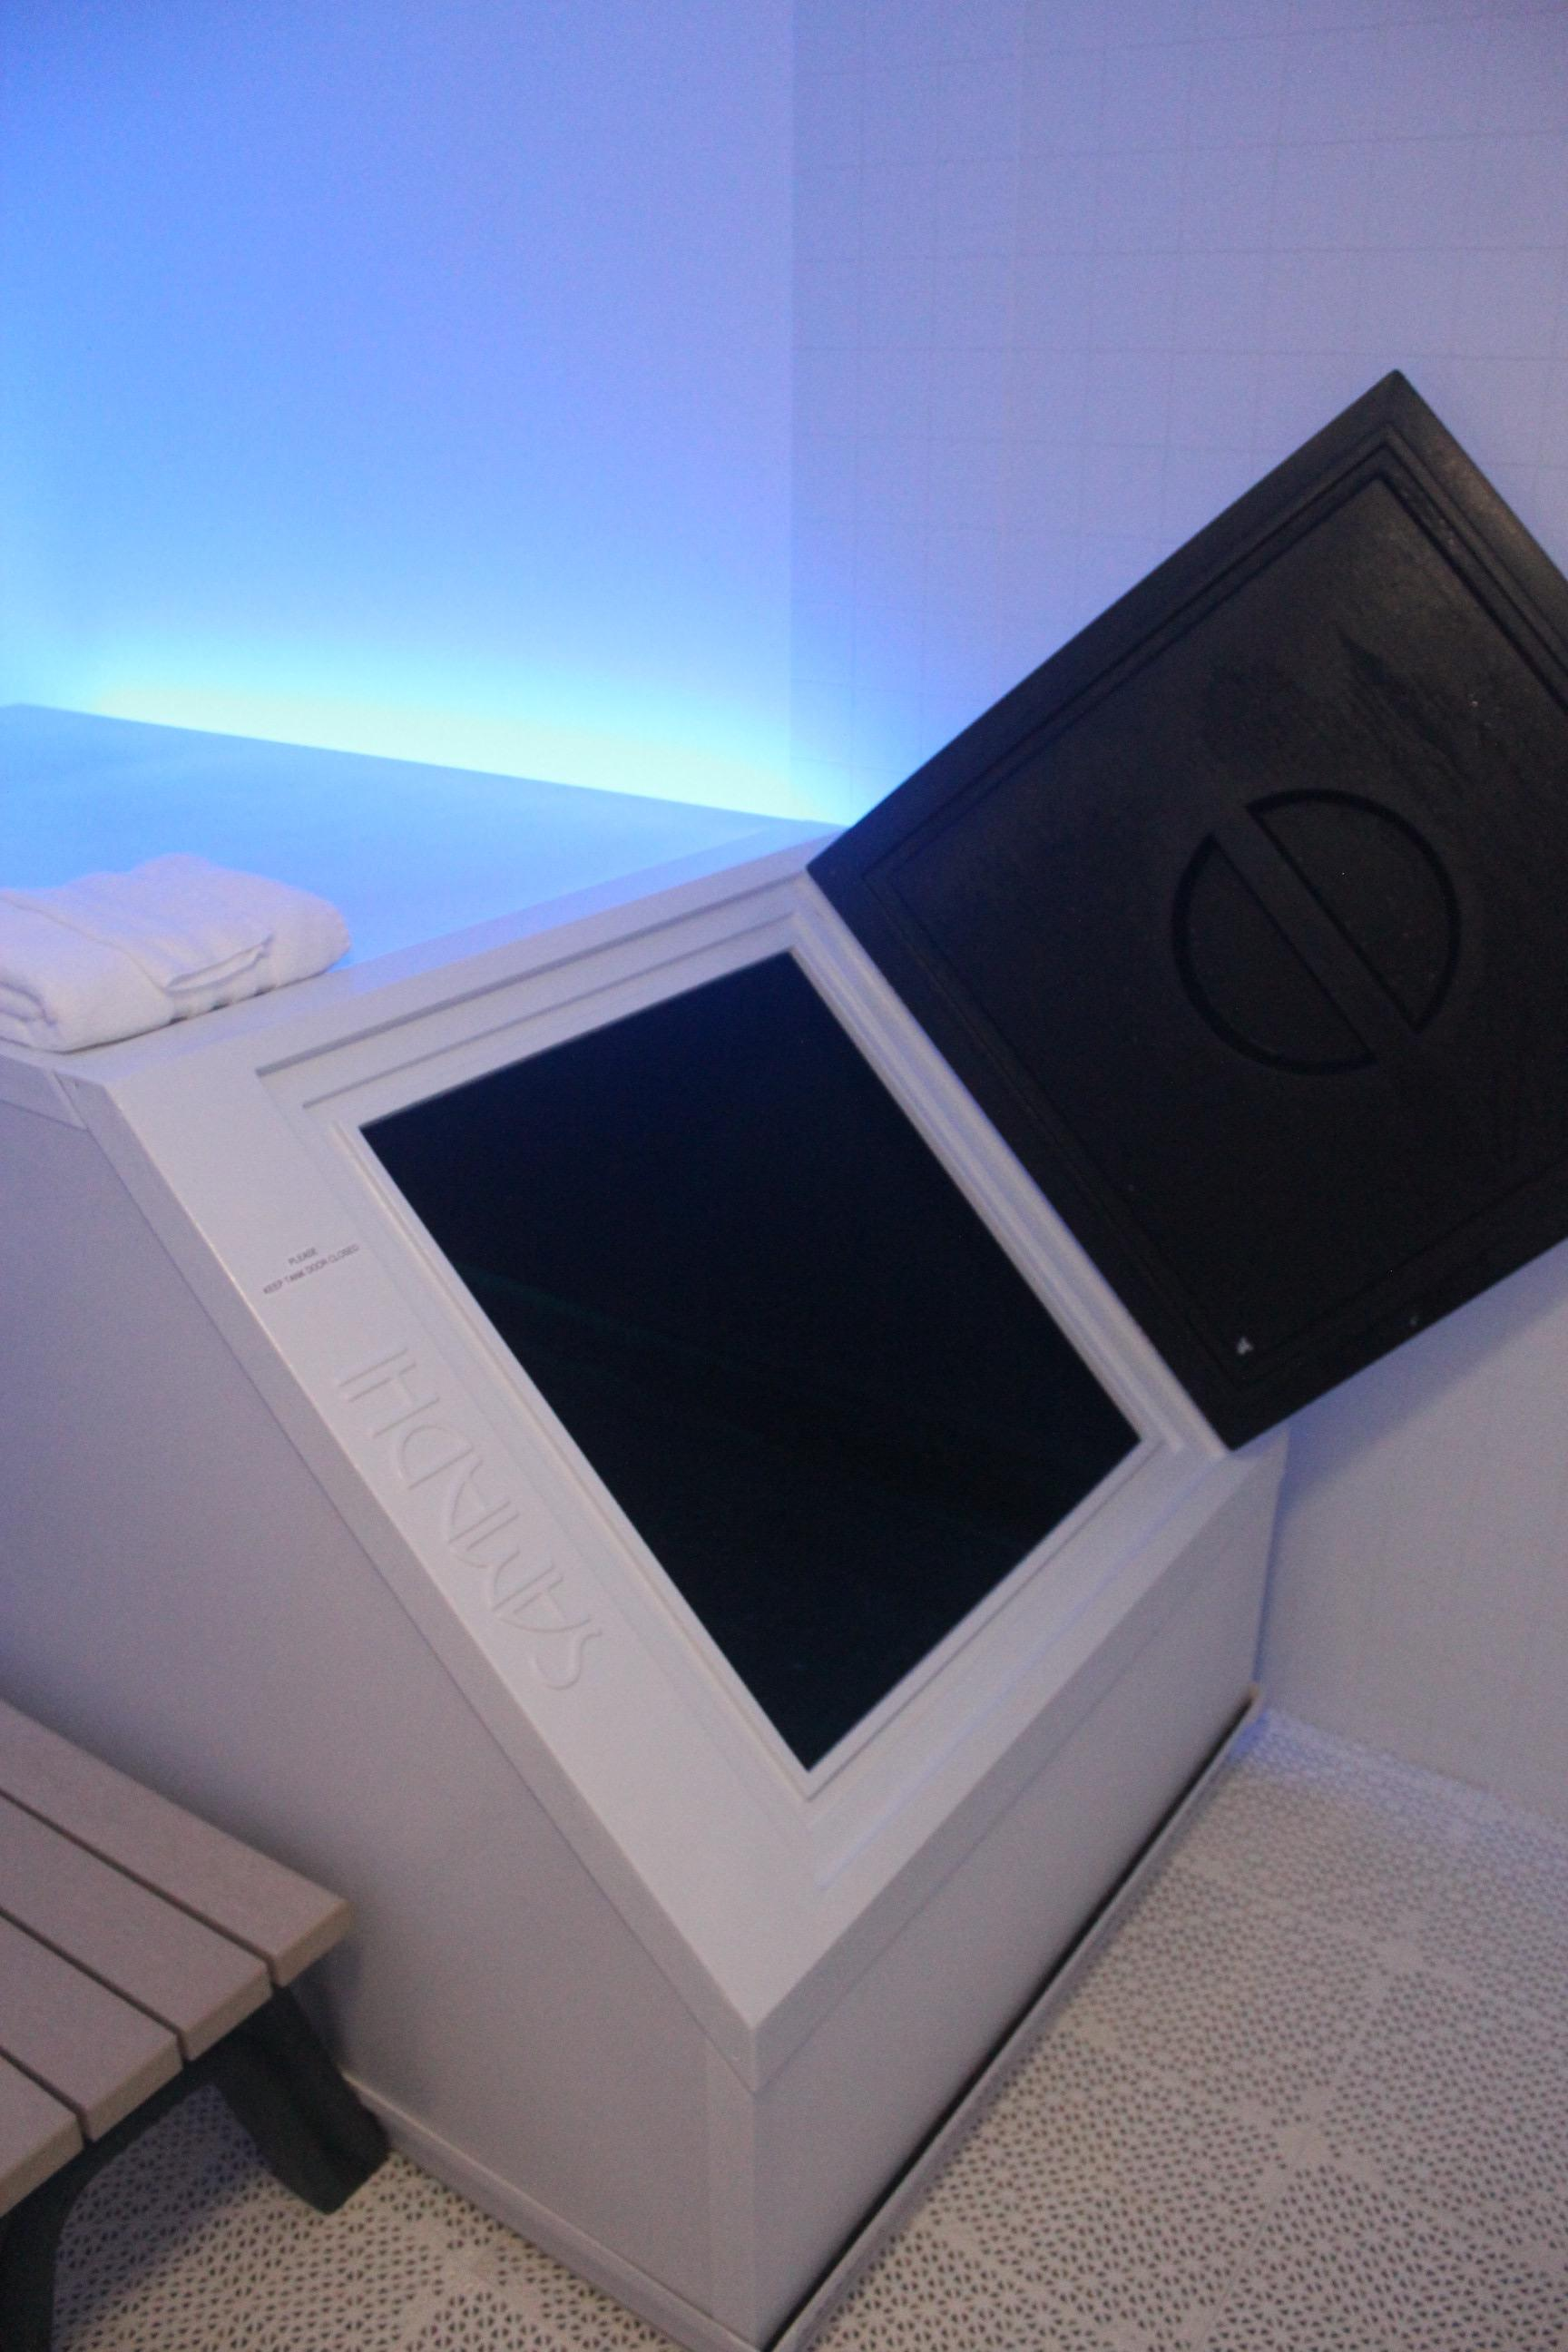 Sensory Deprivation Tank (OM Float)